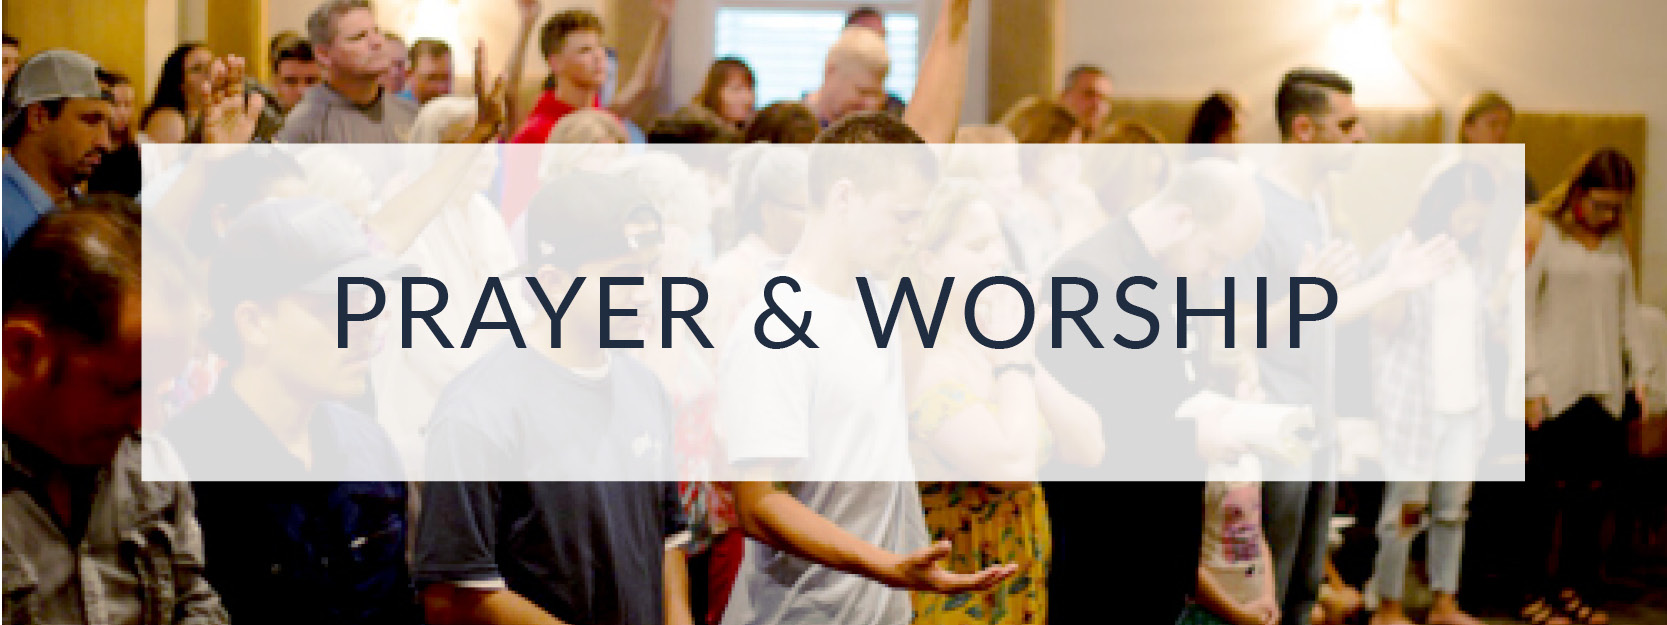 Prayer & Worship at Open Door House of Prayer, Treasure Coast, Florida